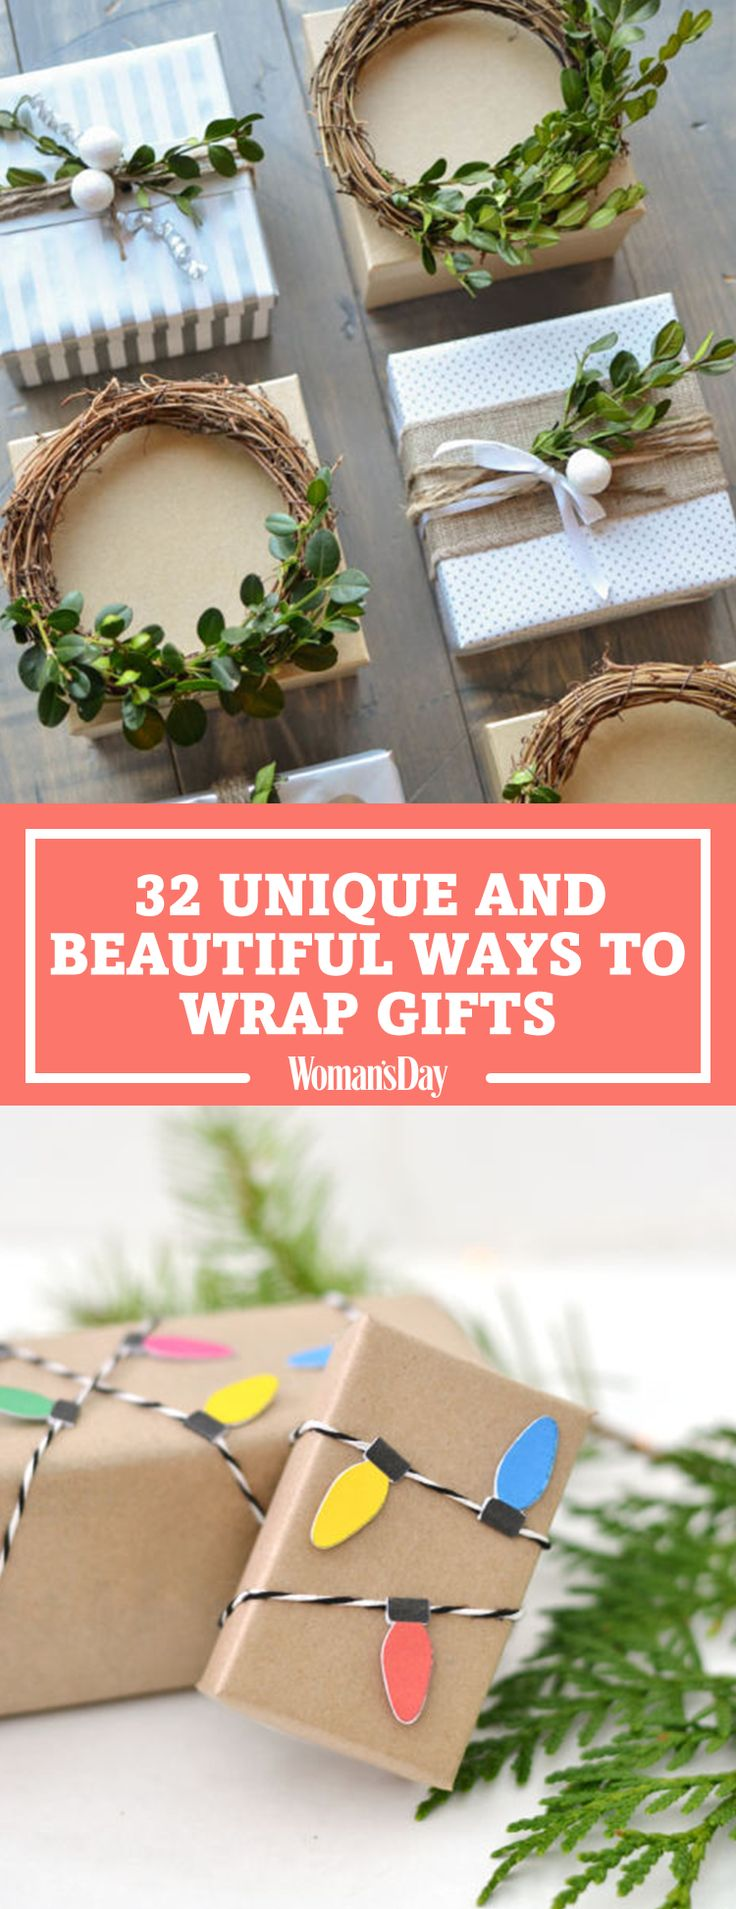 Save these gift wrapping ideas for later by pinning this image and follow Woman's Day on Pinterest for more.